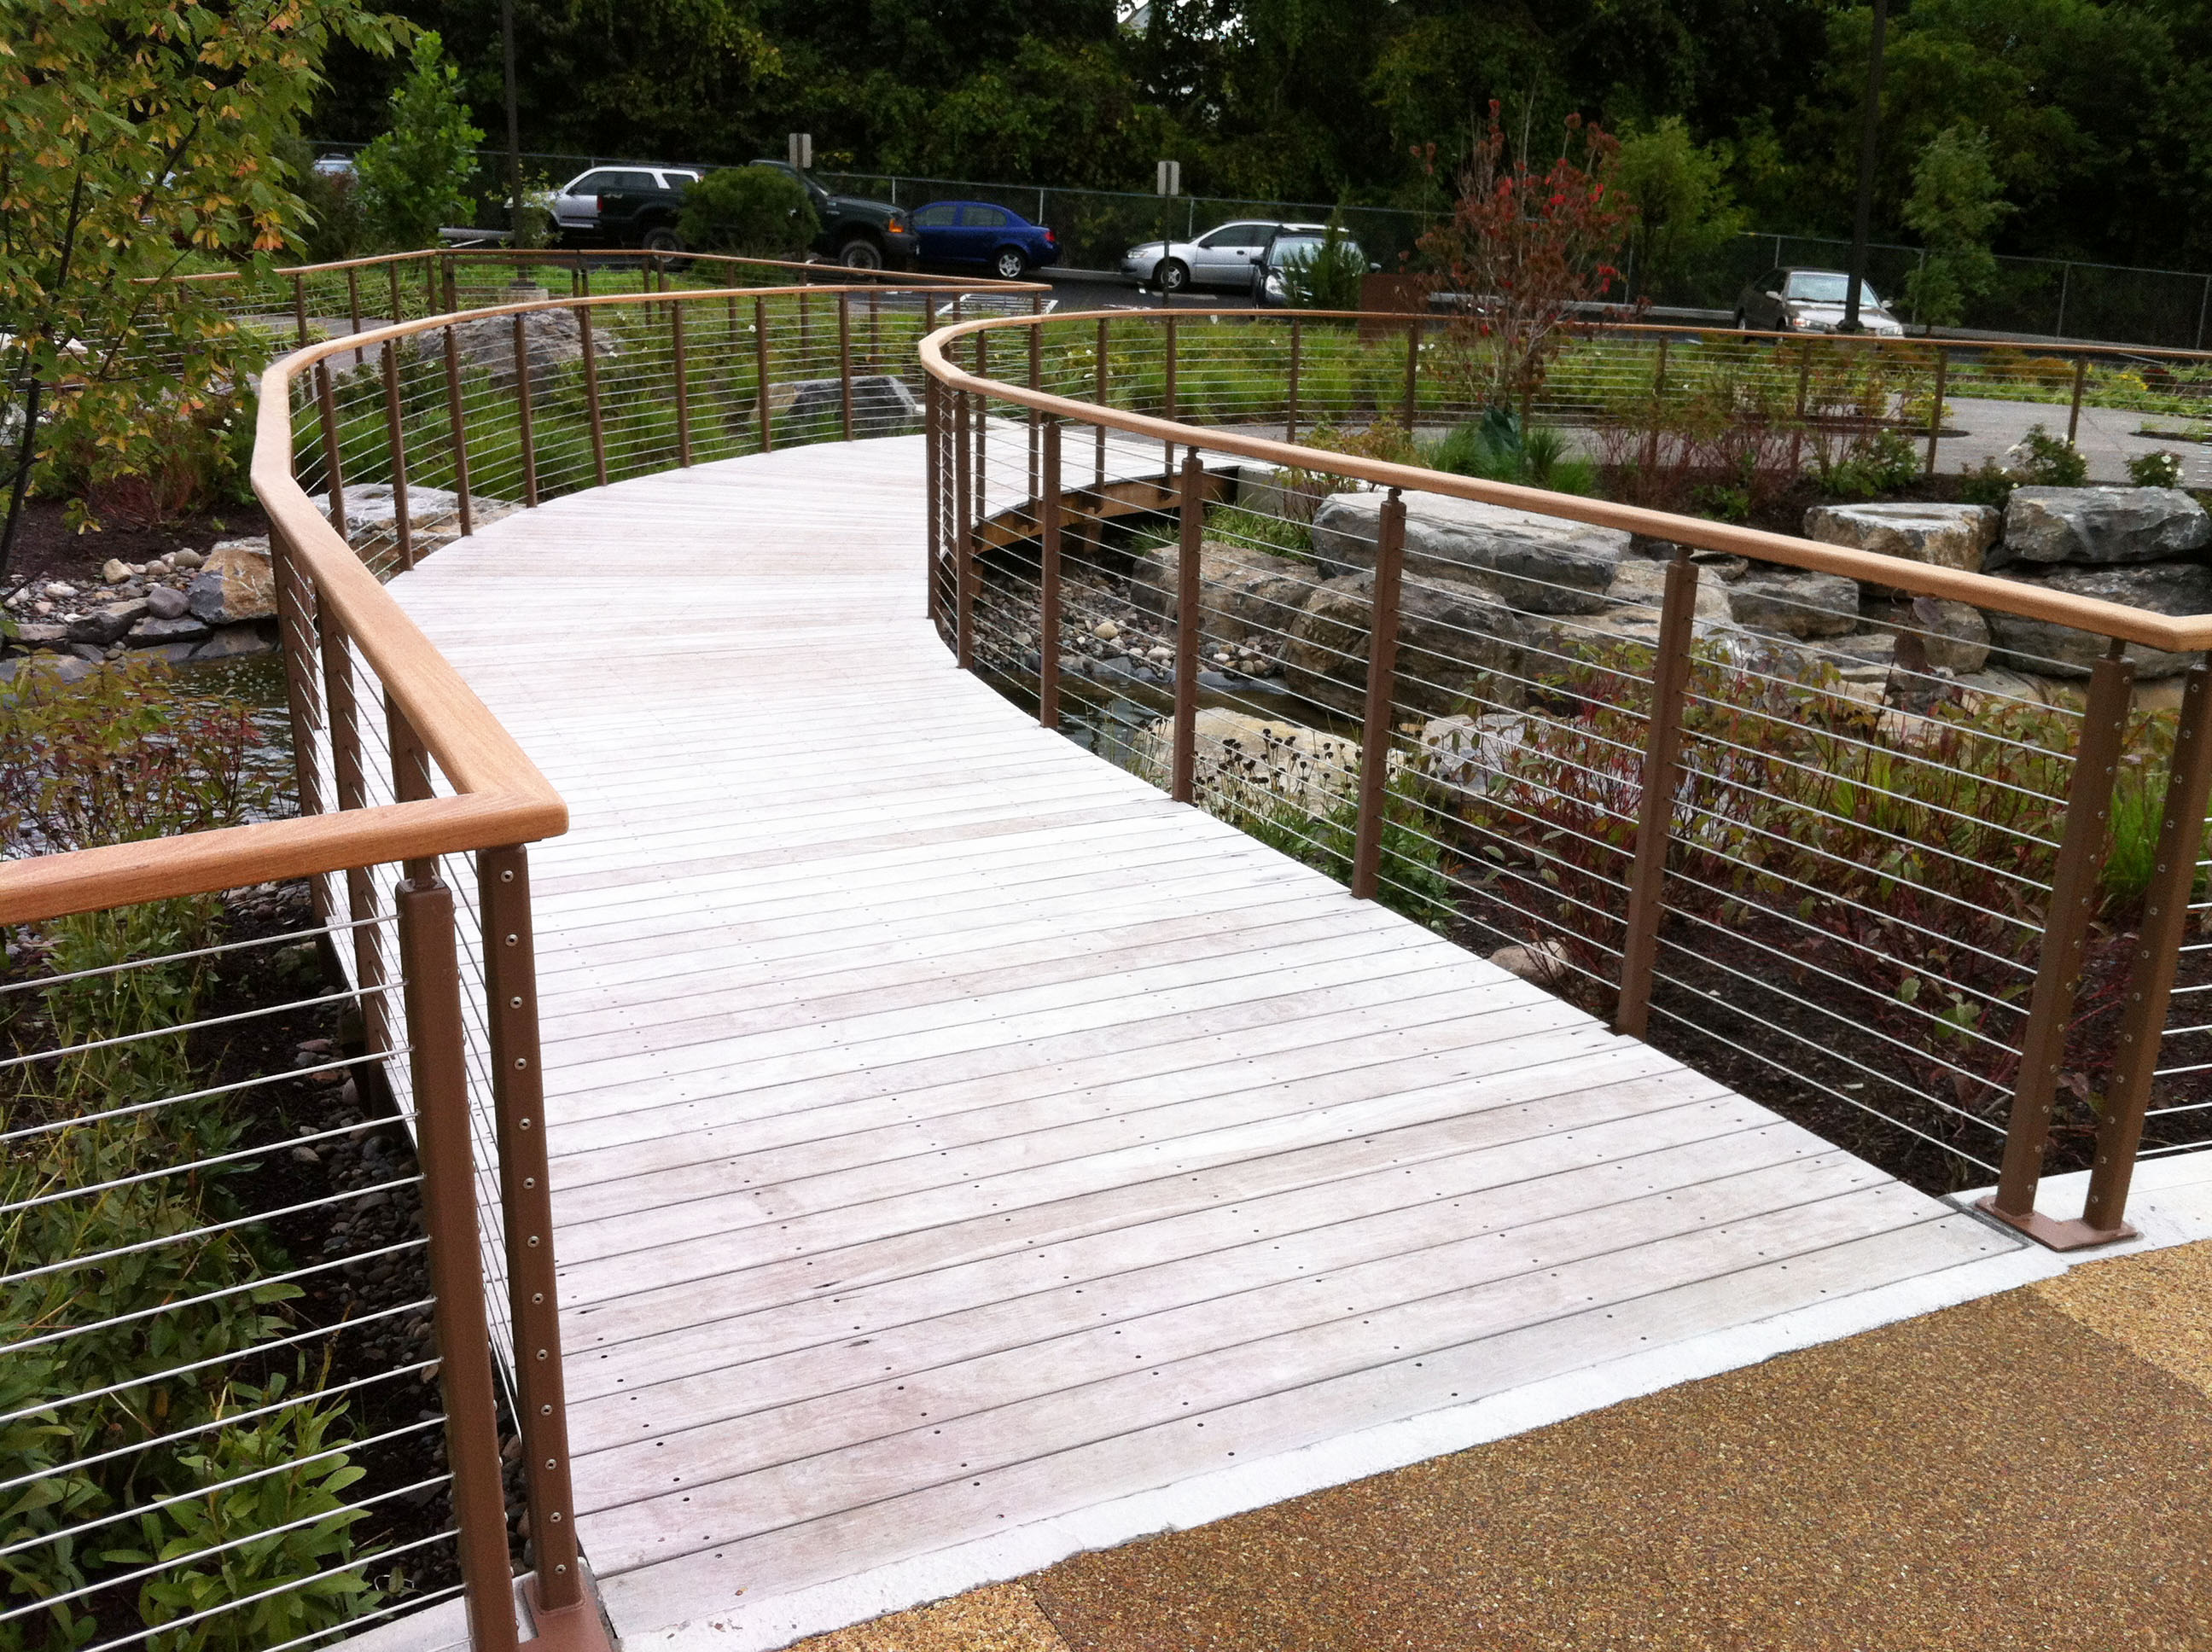 Ithaca style railing on this curved bridge